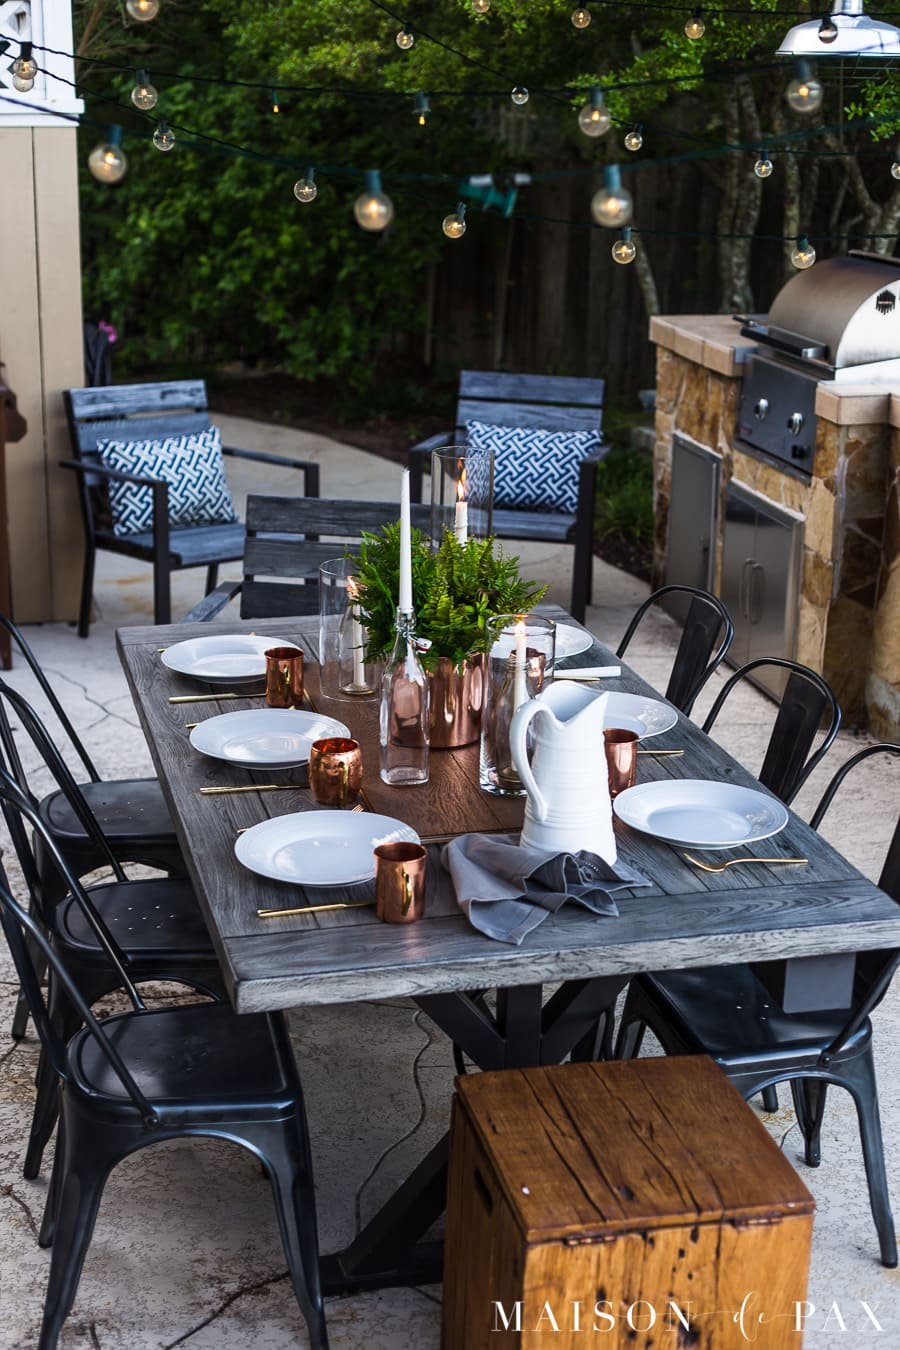 Casually elegant outdoor dining: get tips on creating a gorgeous, simple summer dining space! #outdoordining #outdoorentertaining #summerentertaining